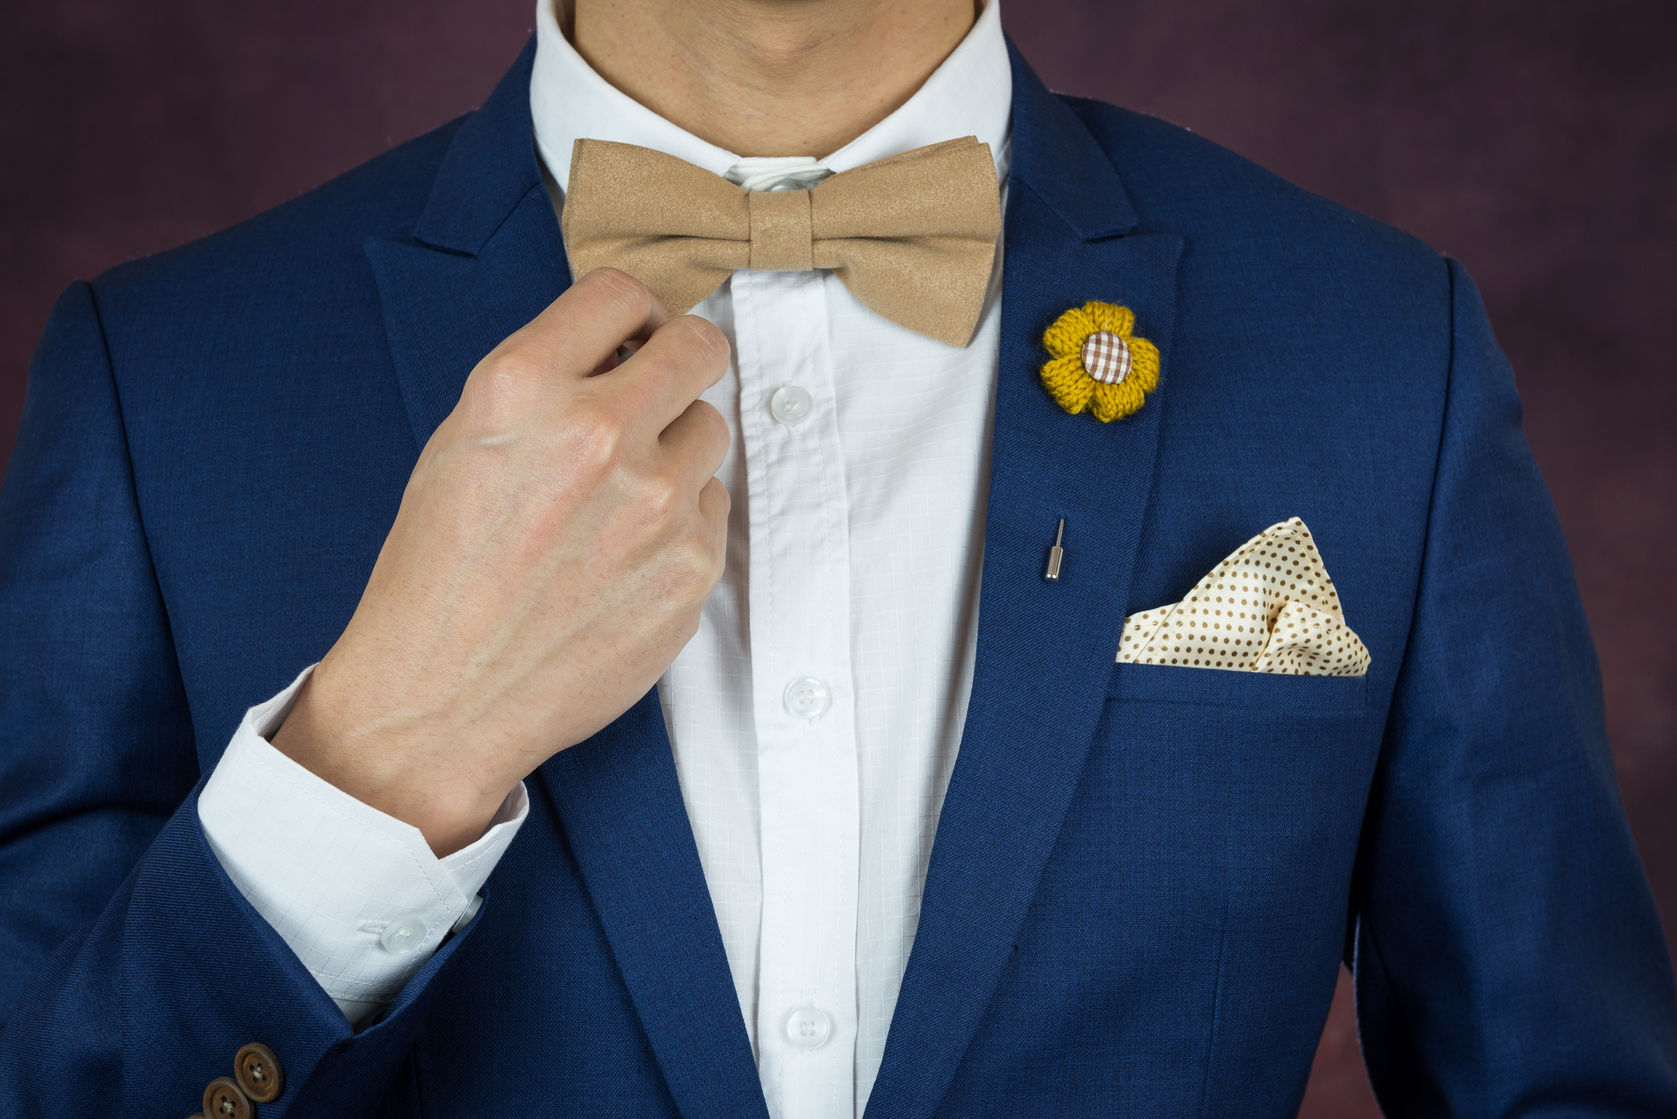 Suits with bow ties how to wear it the right way ccuart Choice Image